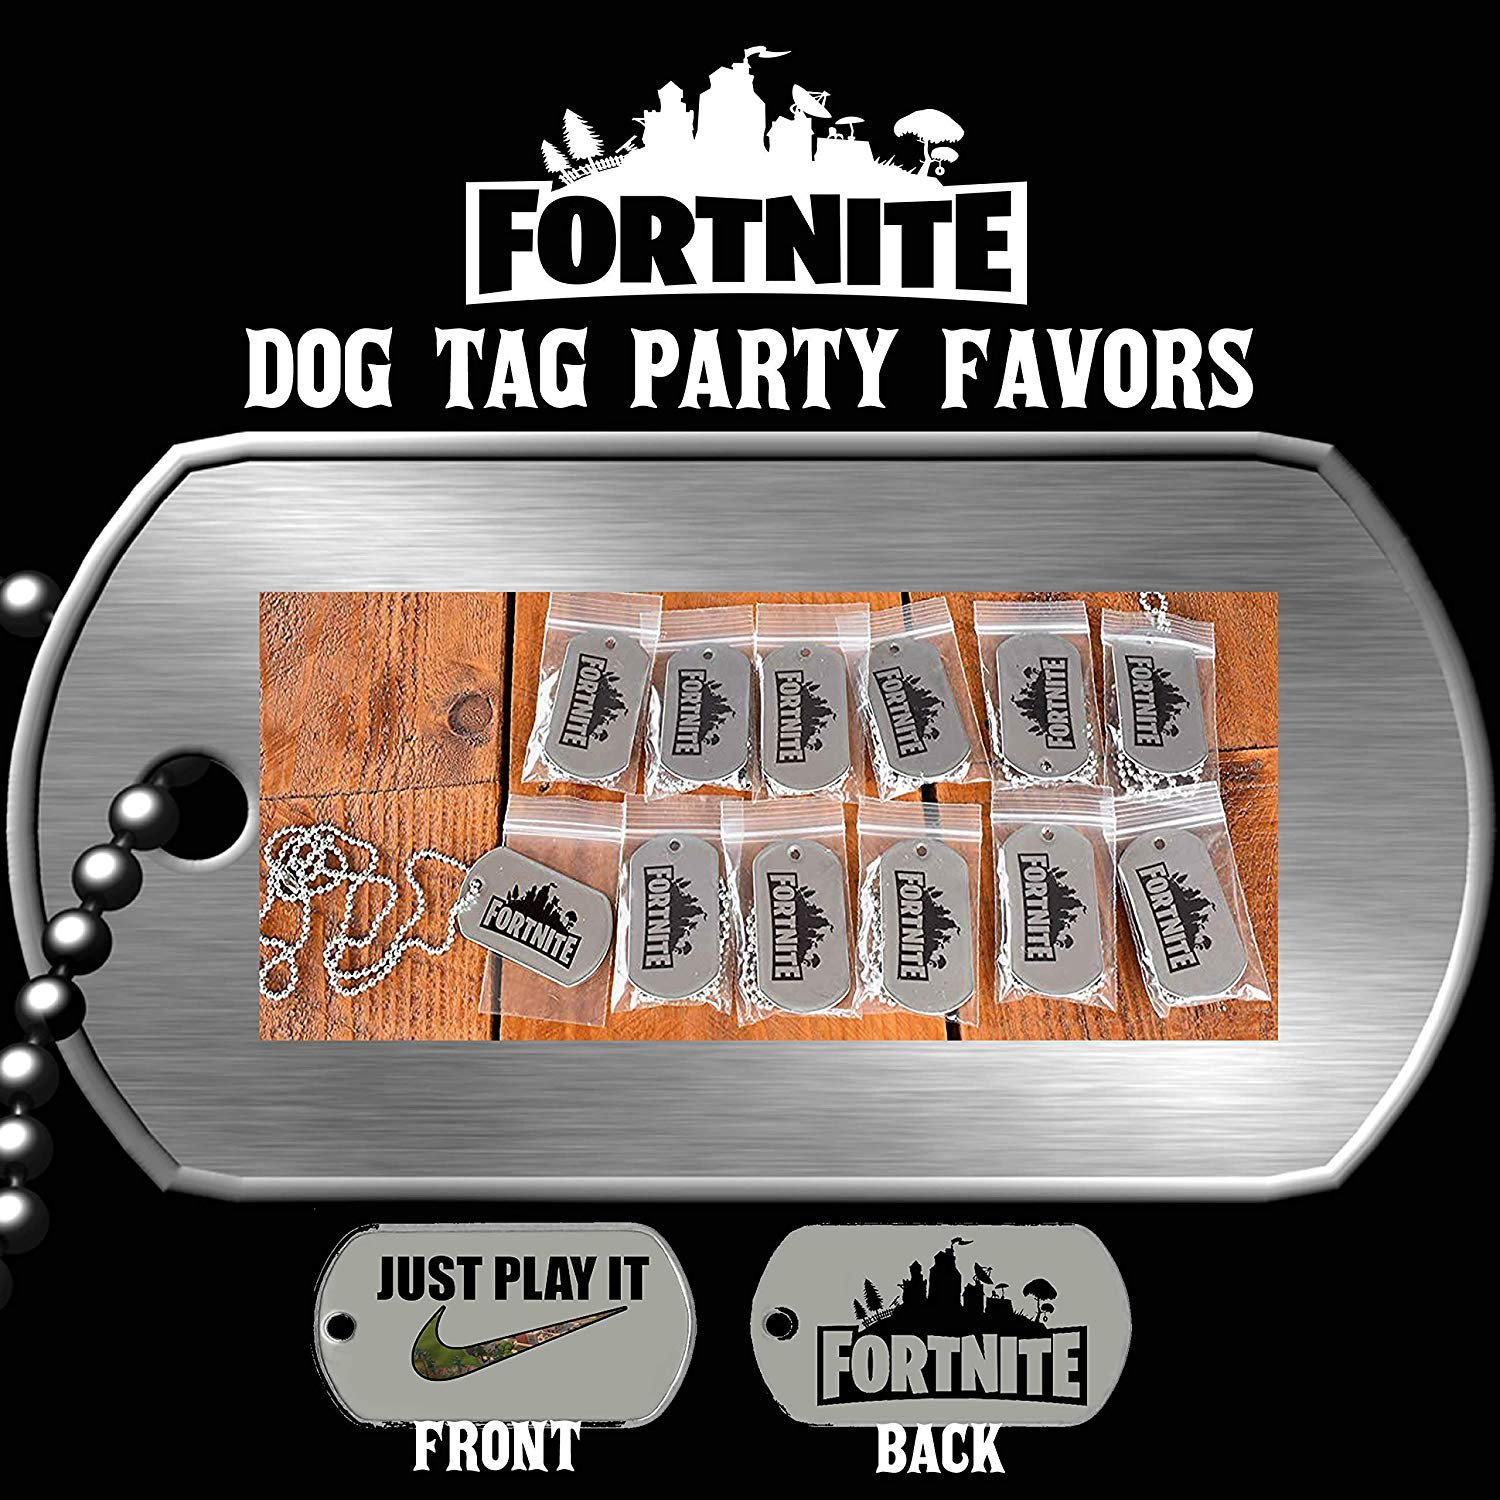 Fortnite Dog Tag Party Favors, Fortnite party favors, Fortnite birthday, Fortnite party supplies